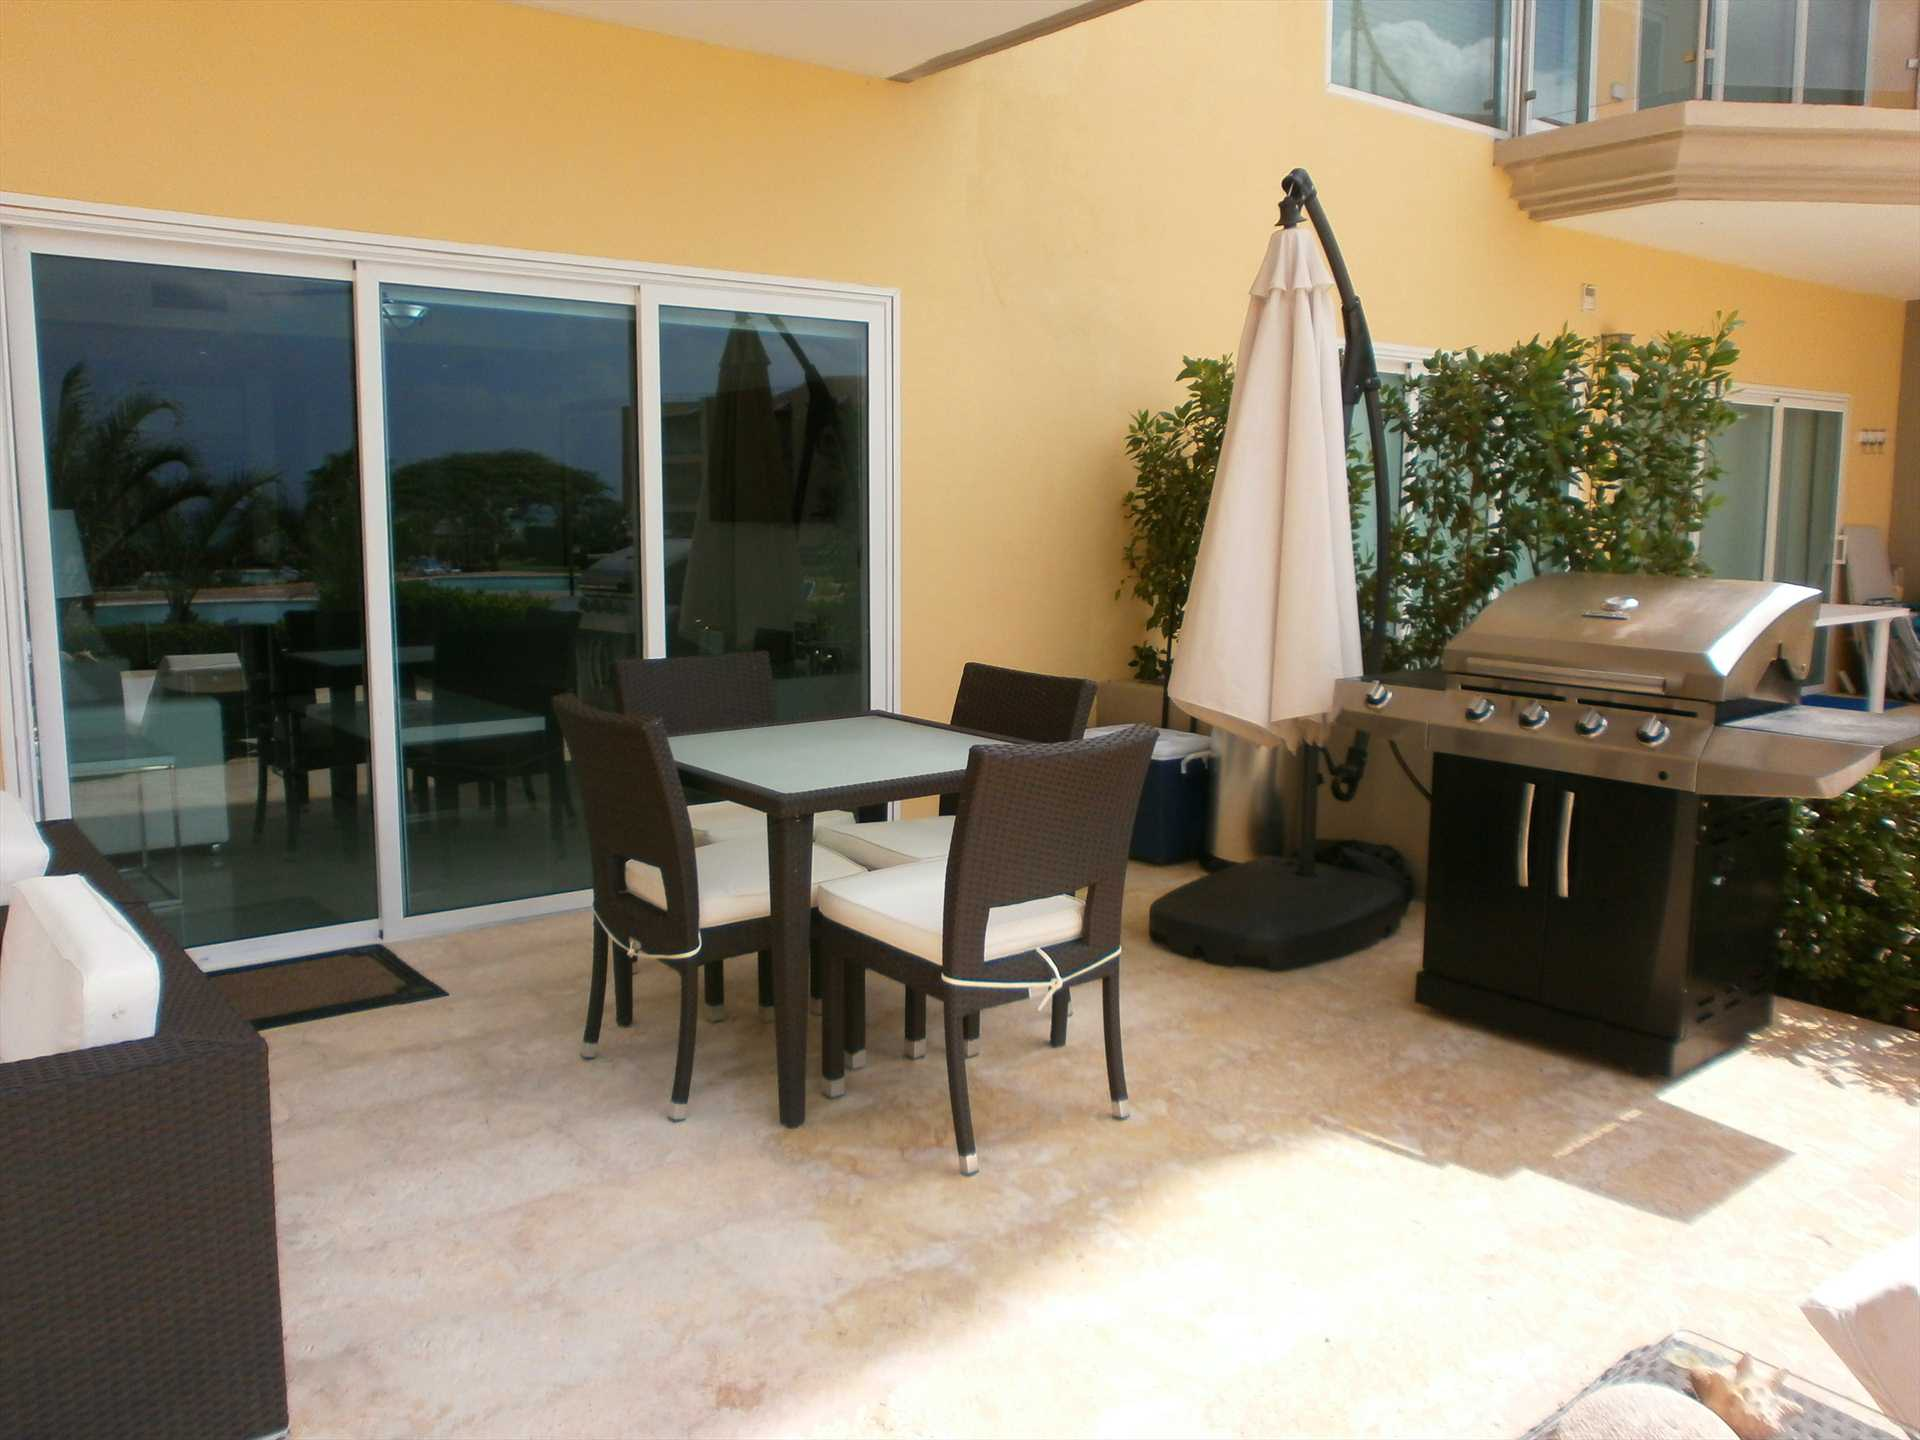 A 4-seat dining and a full-size (gas) BBQ grill!